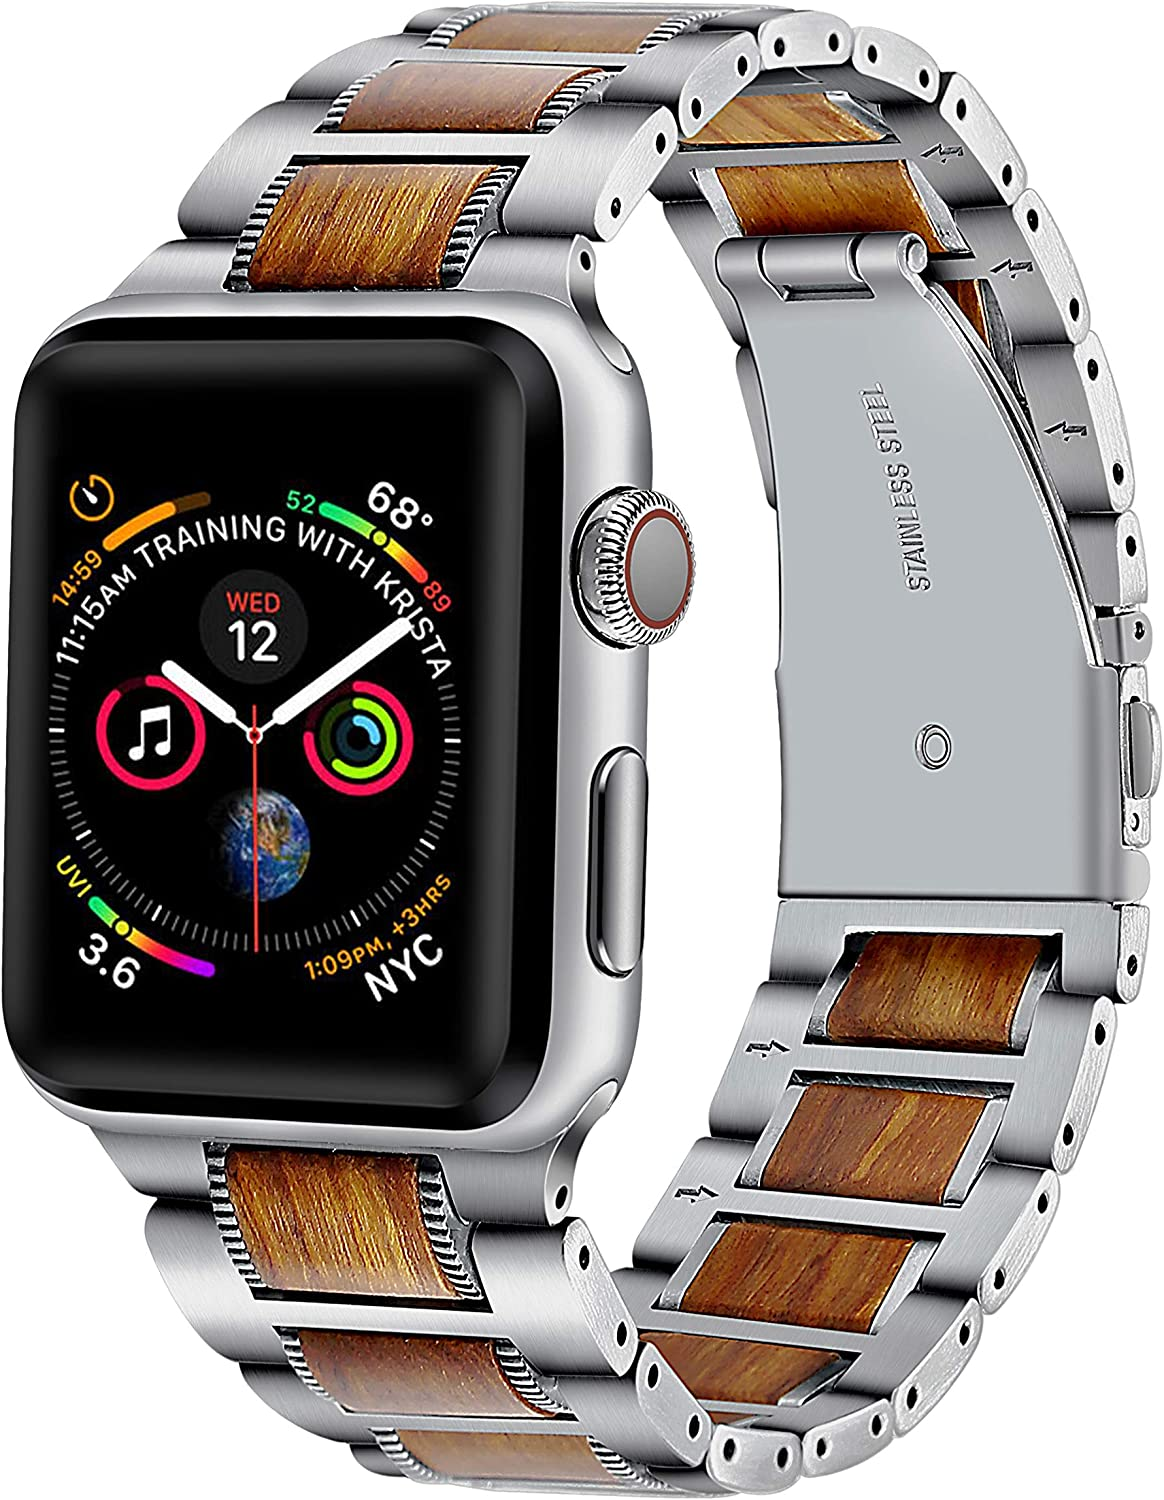 Compatible with Apple Watch Band 42mm 44mm,DMMG Wood Metal Natural Genuine Purple Sandalwood with Stainless Steel Metal Clasp Replacement iwatch Band Compatible Apple Watch Series6 5 4 3 2 1 SE(Silver)